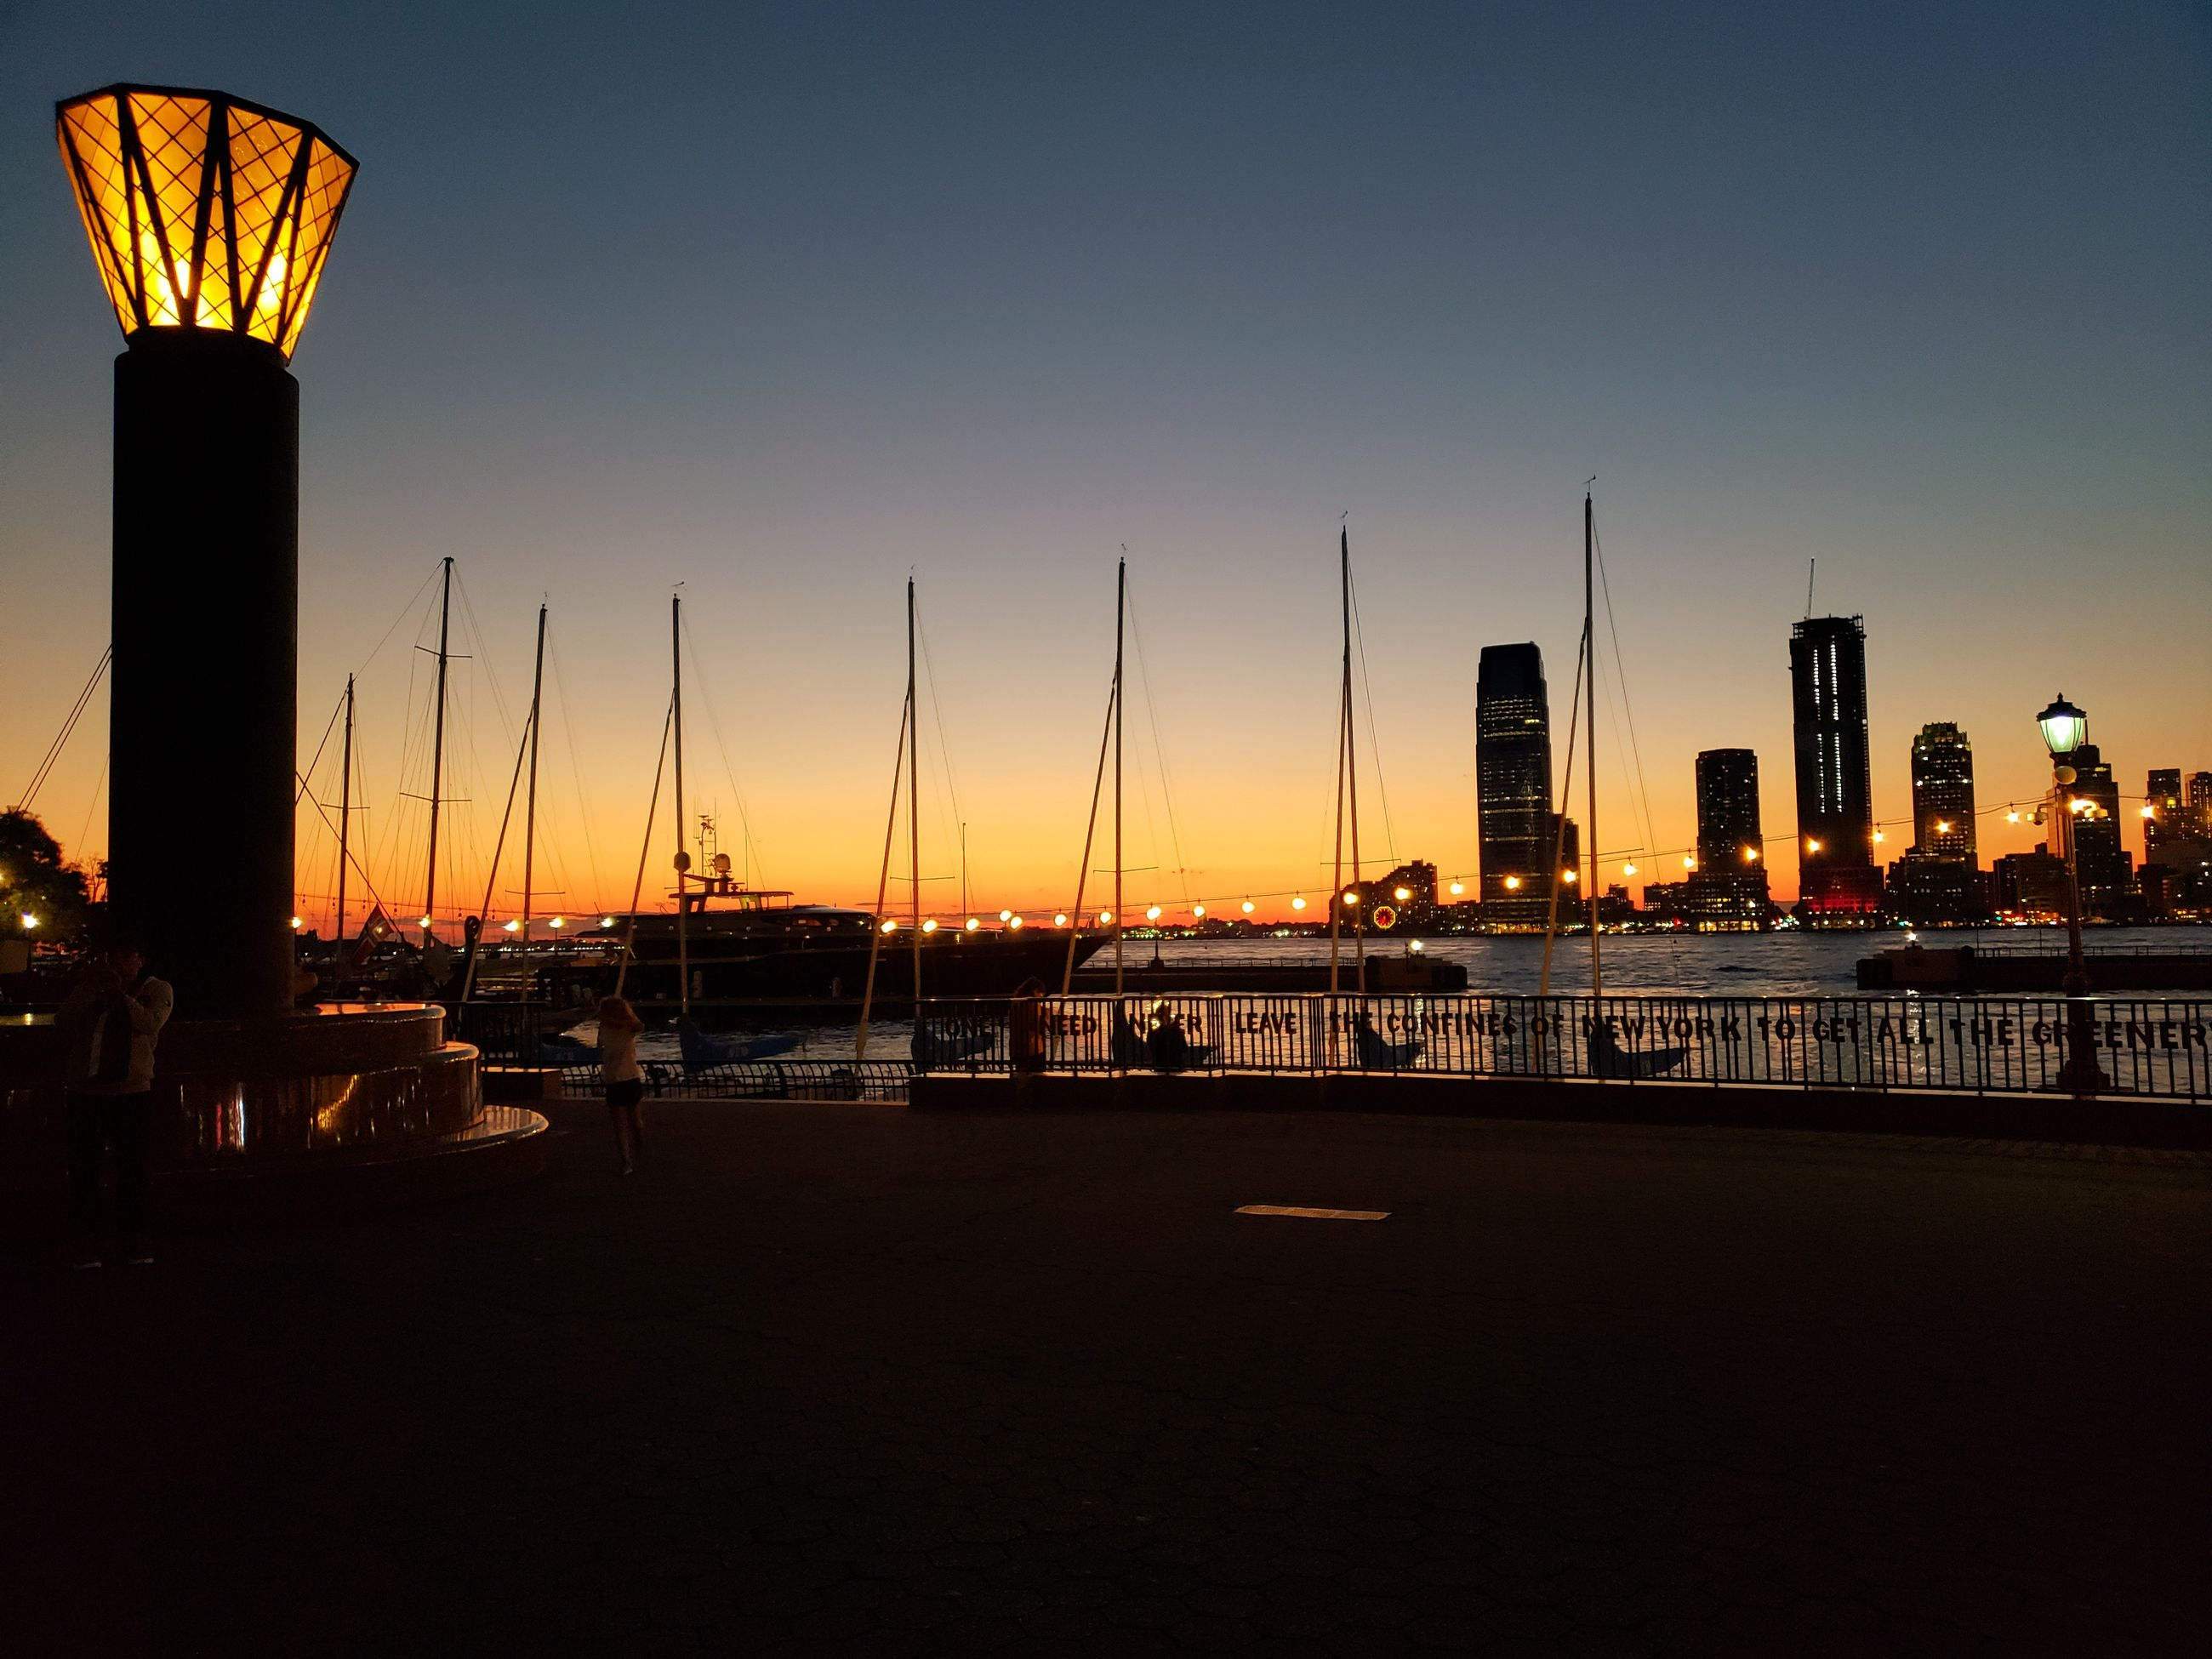 SAILBOATS IN CITY AT SUNSET